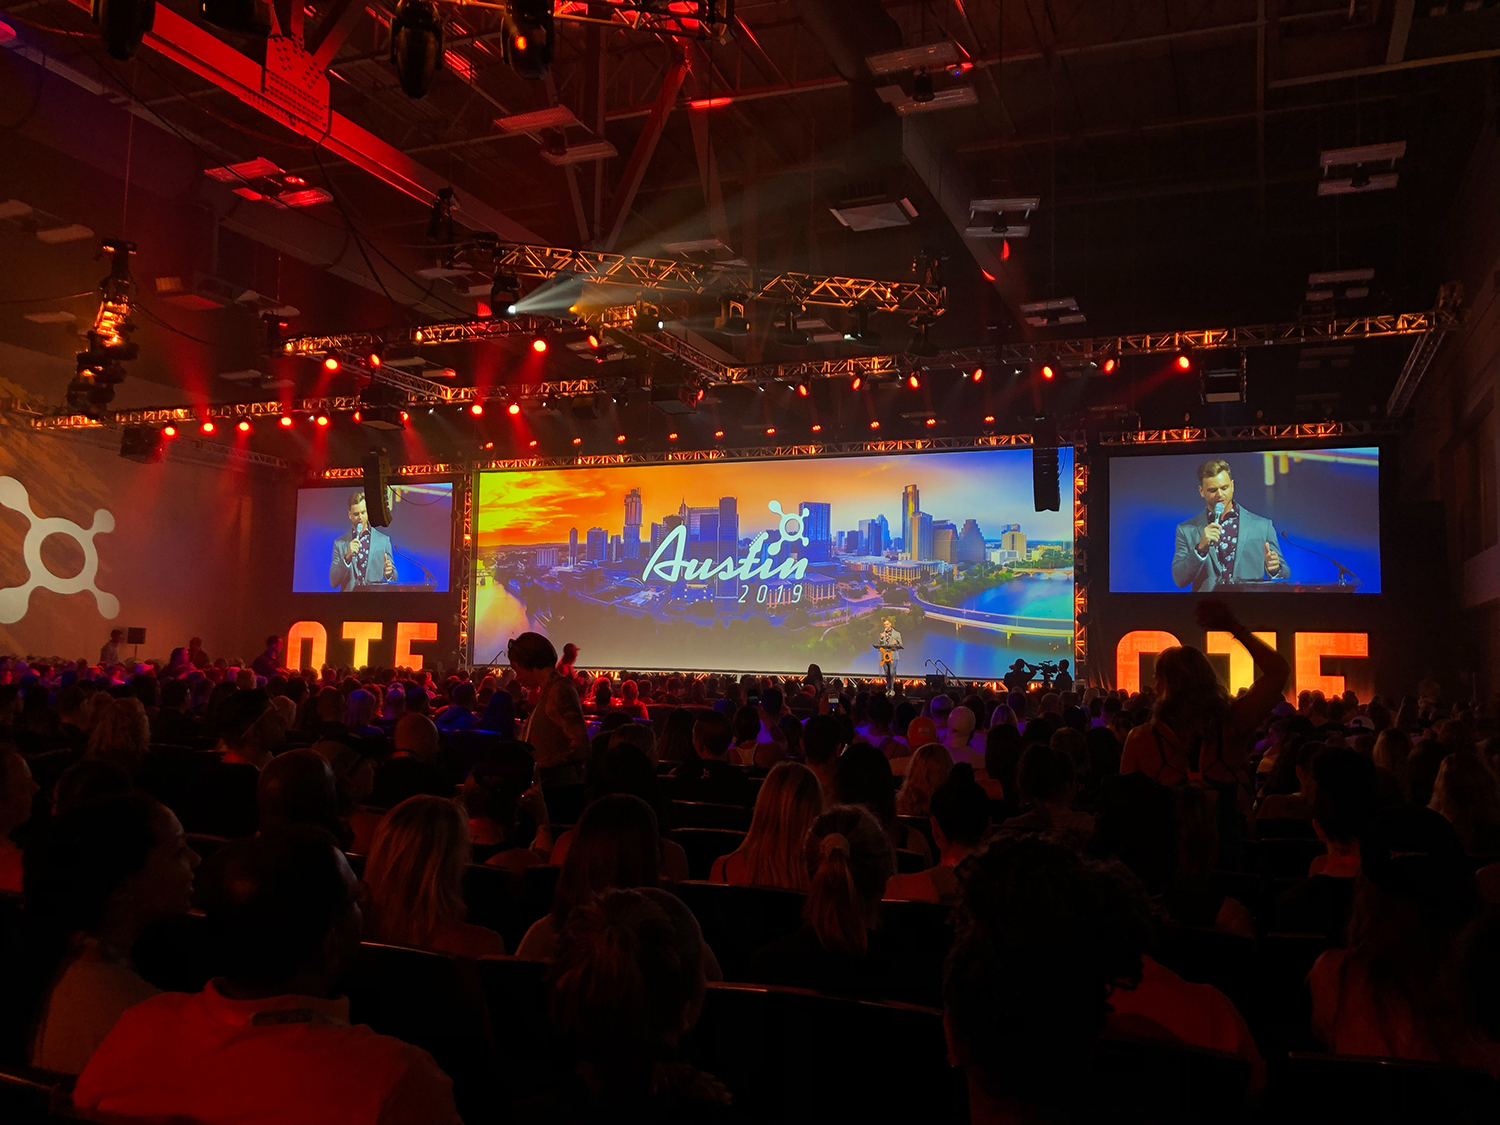 Orangetheory Fitness Convention 2019